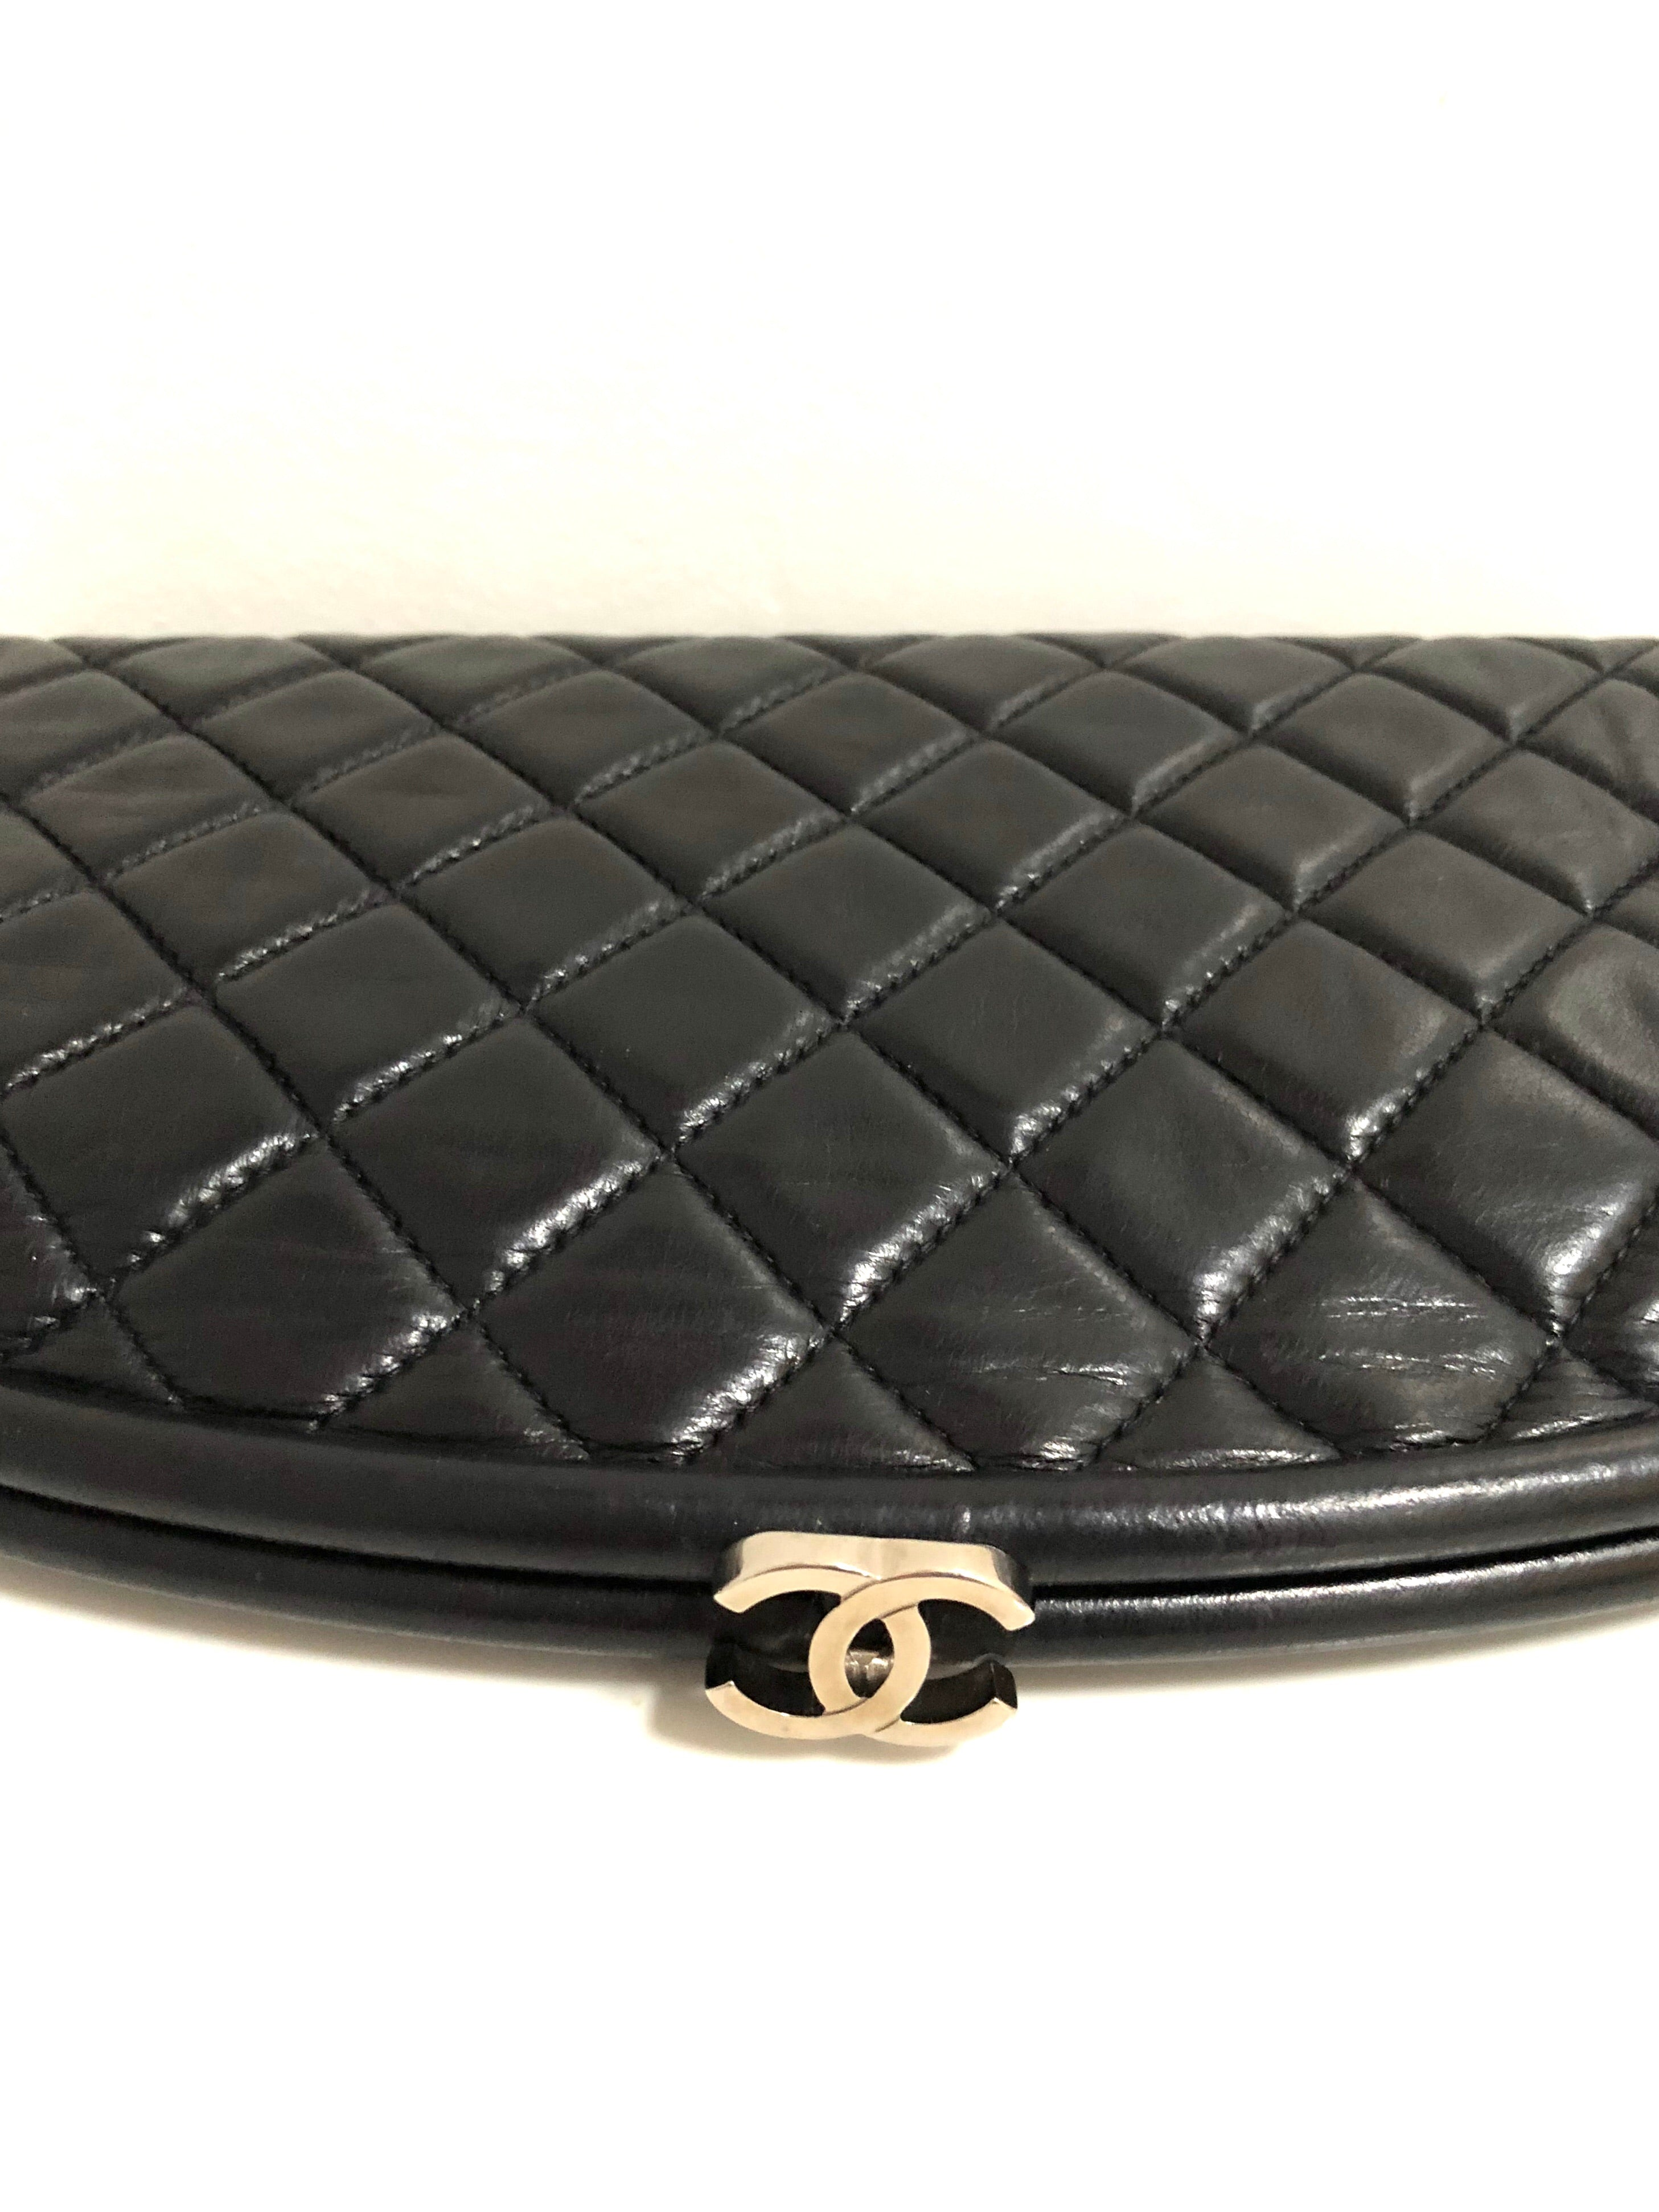 5f53465d0e5990 Chanel Black Lambskin Leather Quilted Timeless Clutch with Silvertone CC  clasp